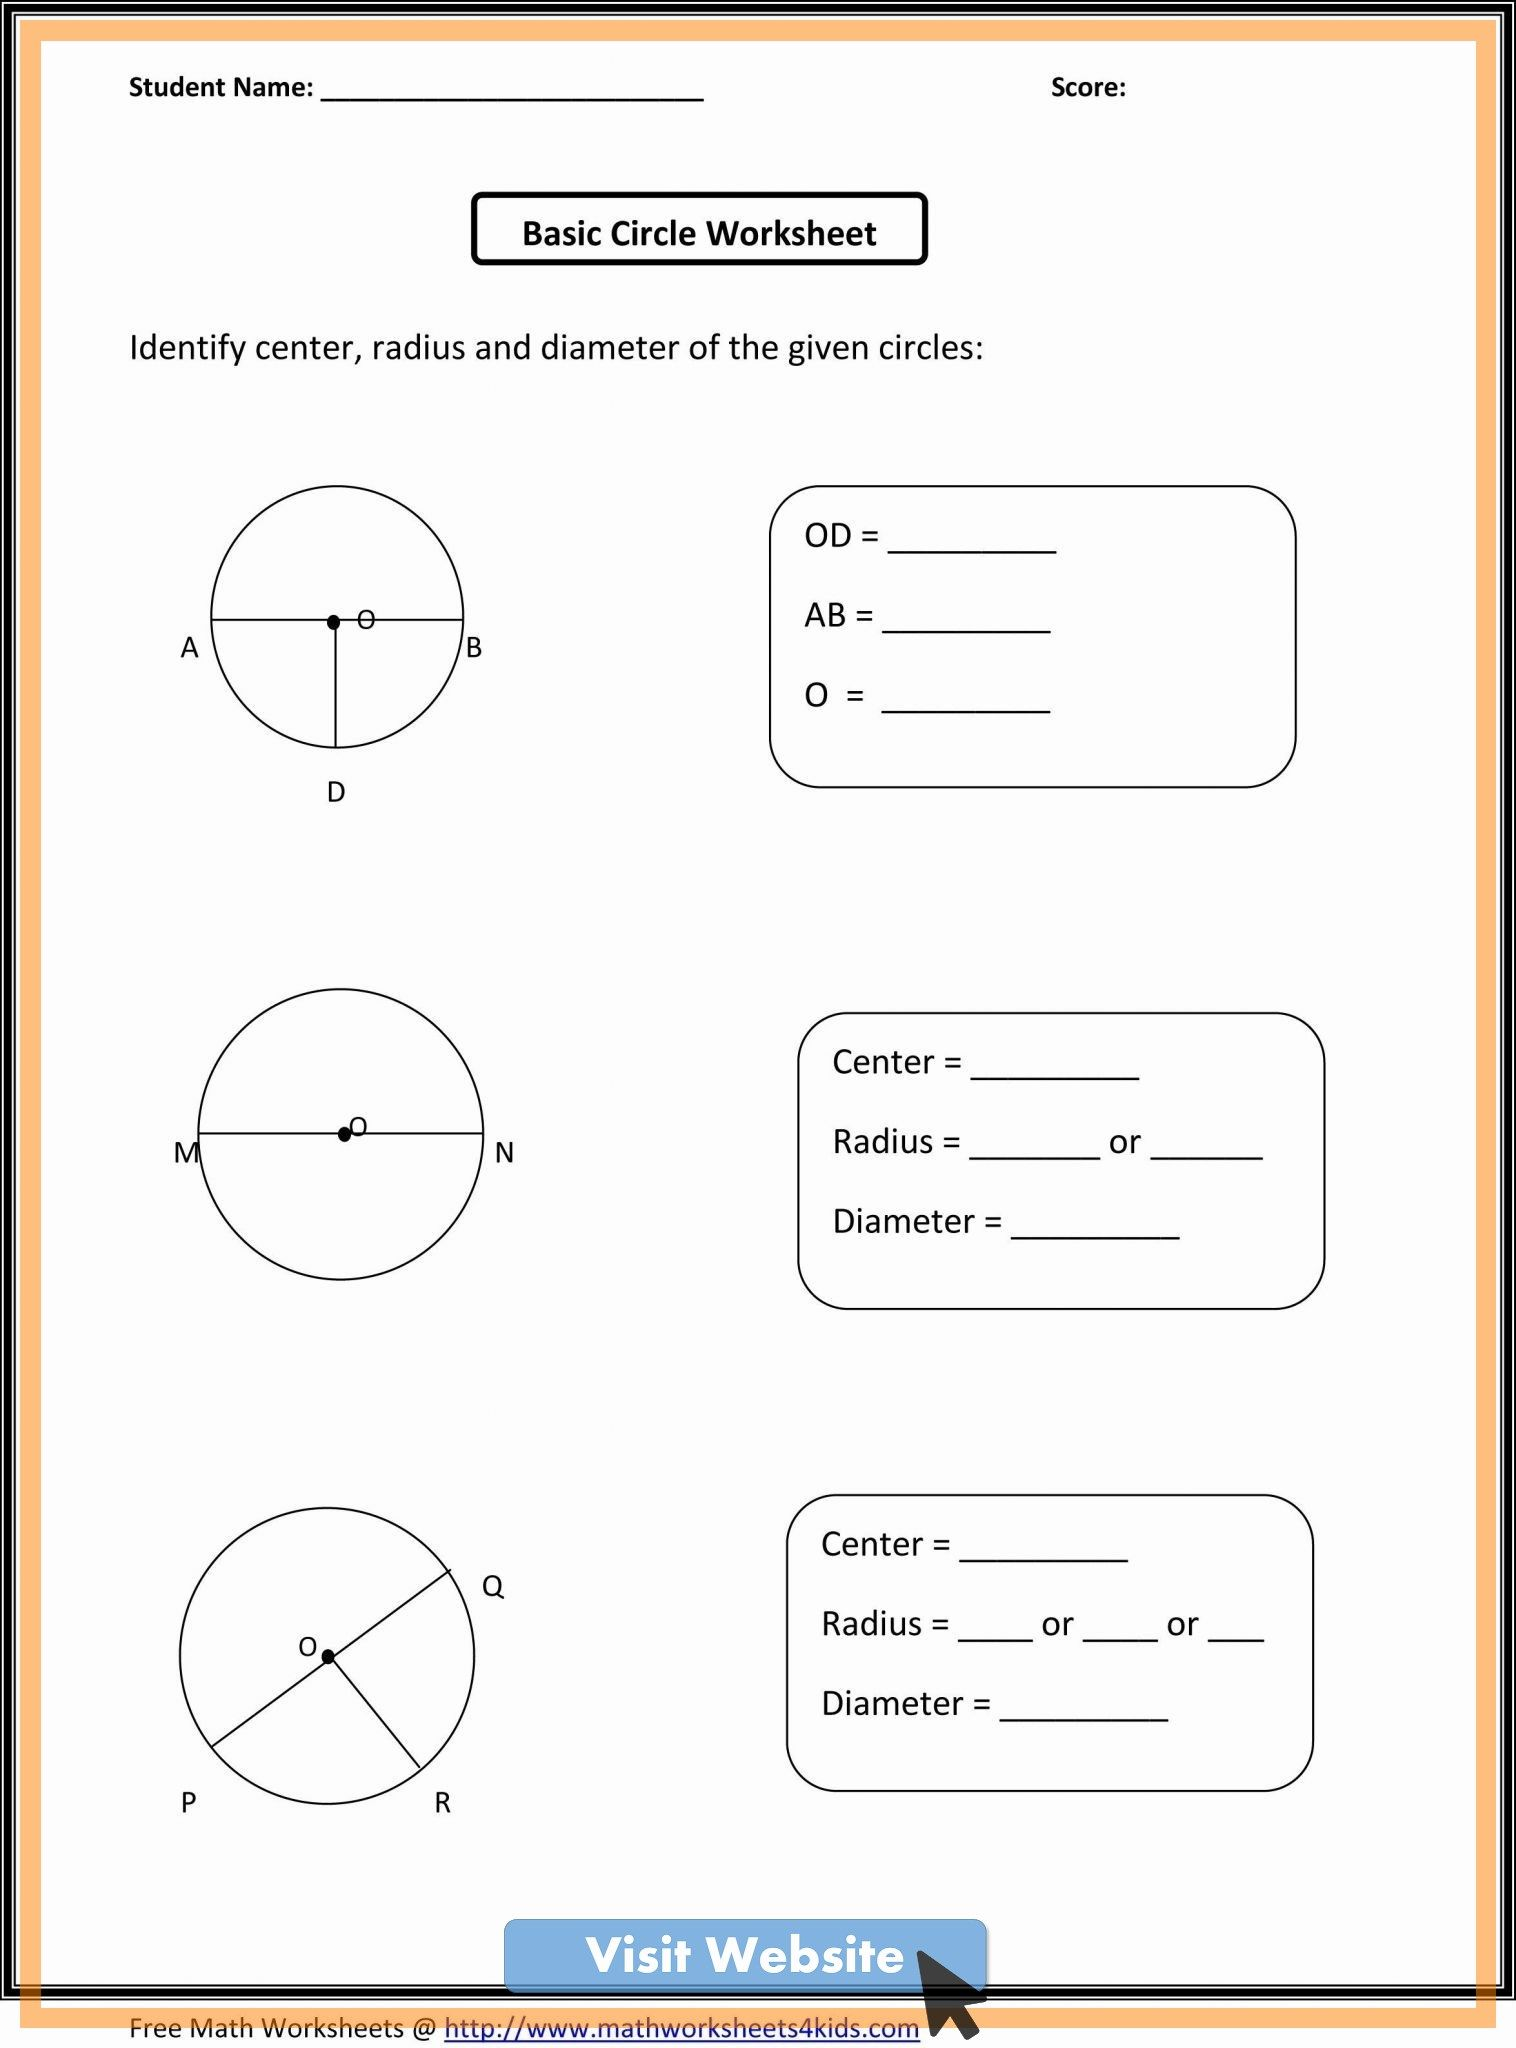 Addition Within 20 Worksheets First Grade Math Printable Math Worksheets Math Worksheets 3rd Grade Math Worksheets